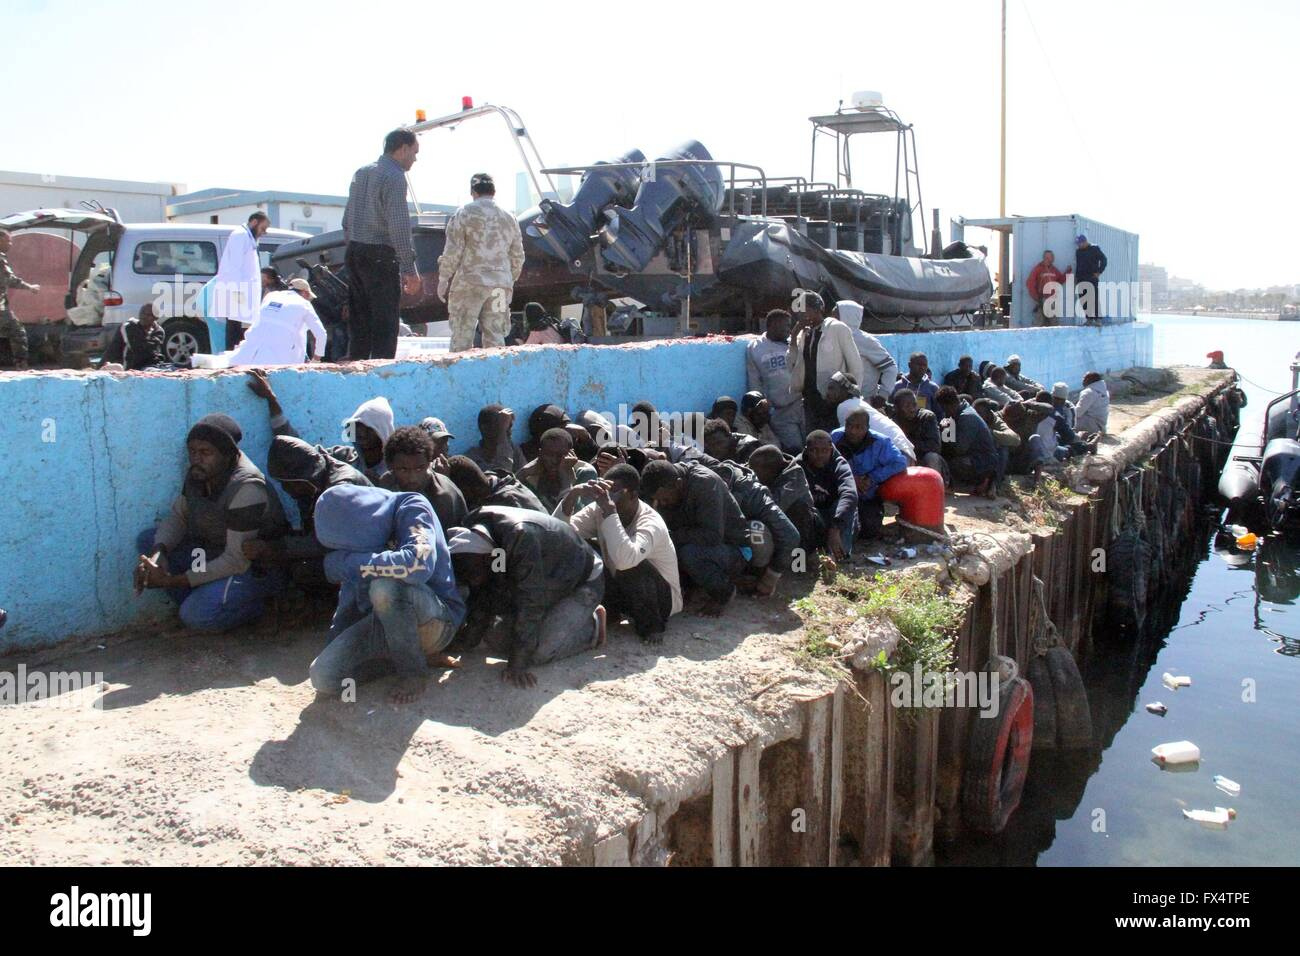 Tripoli. 11th Apr, 2016. Illegal migrants sit on the dock at the Tripoli port after 115 migrants of African origins - Stock Image